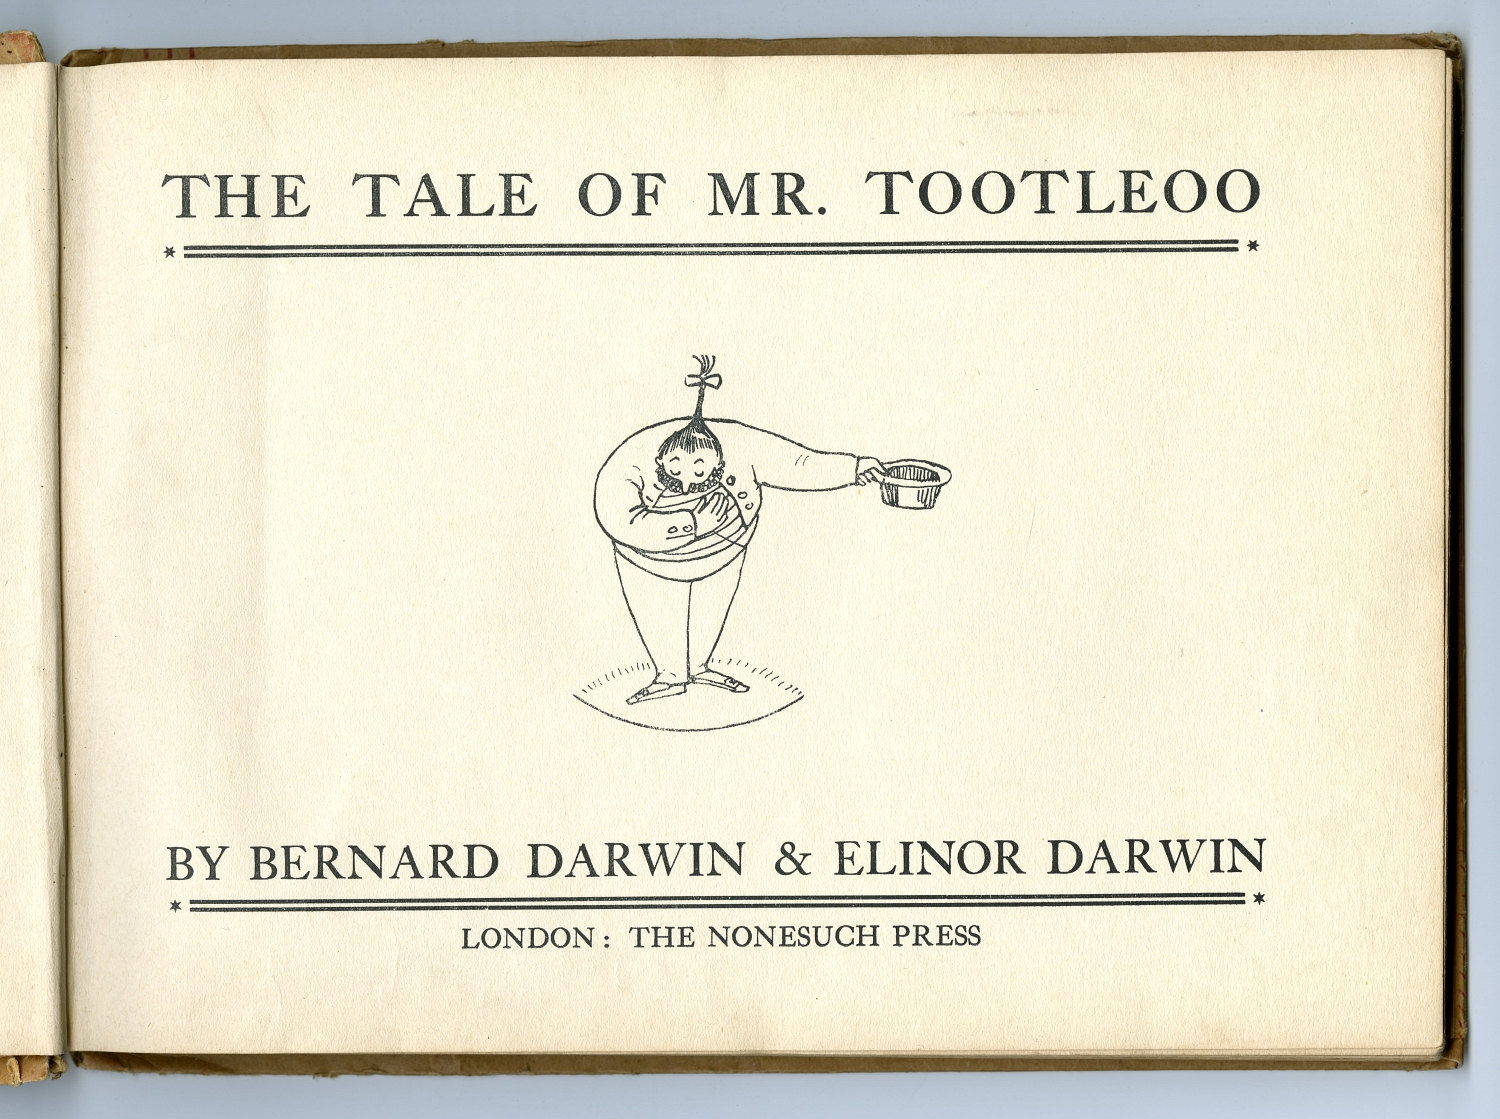 1925 The Rale Of Mr Tootleoo title